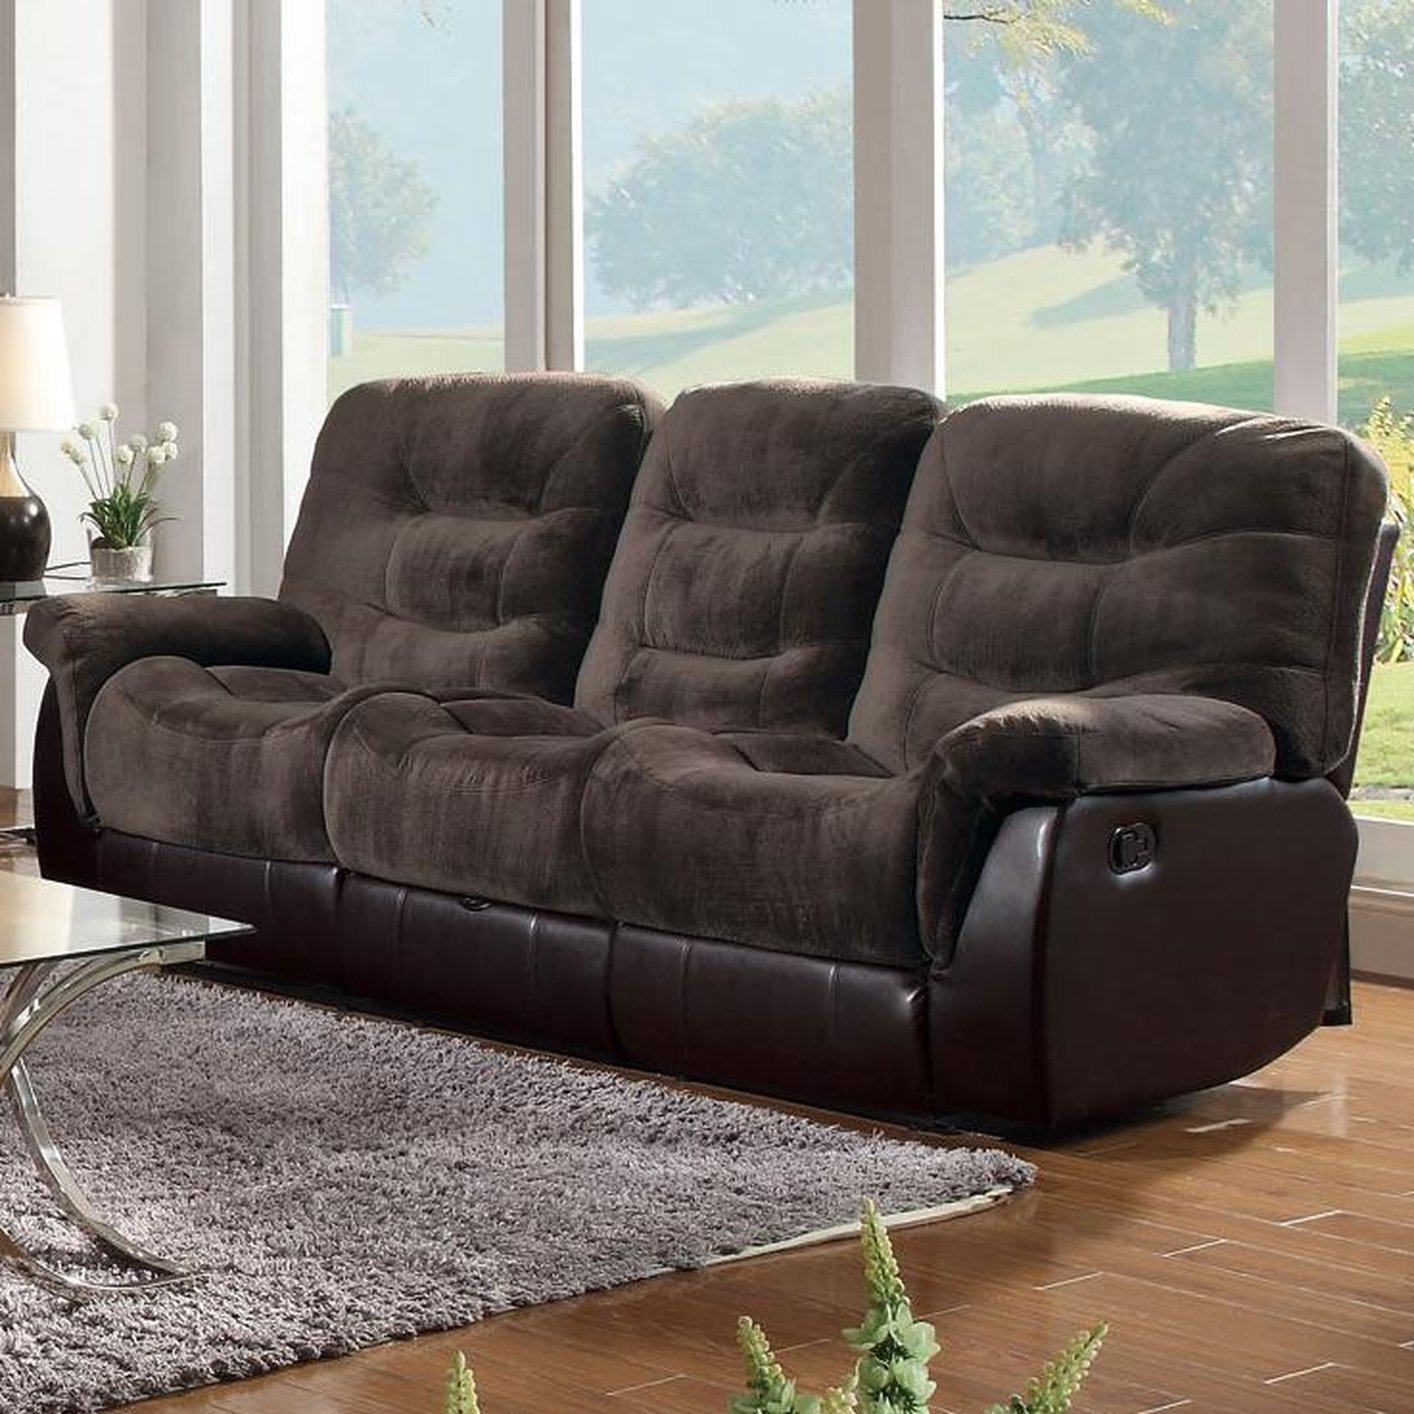 Fabric Recliner Sofa Where Is The Best Place To Buy  : brown fabric reclining sofa 3 from diydesign.org size 1414 x 1414 jpeg 286kB